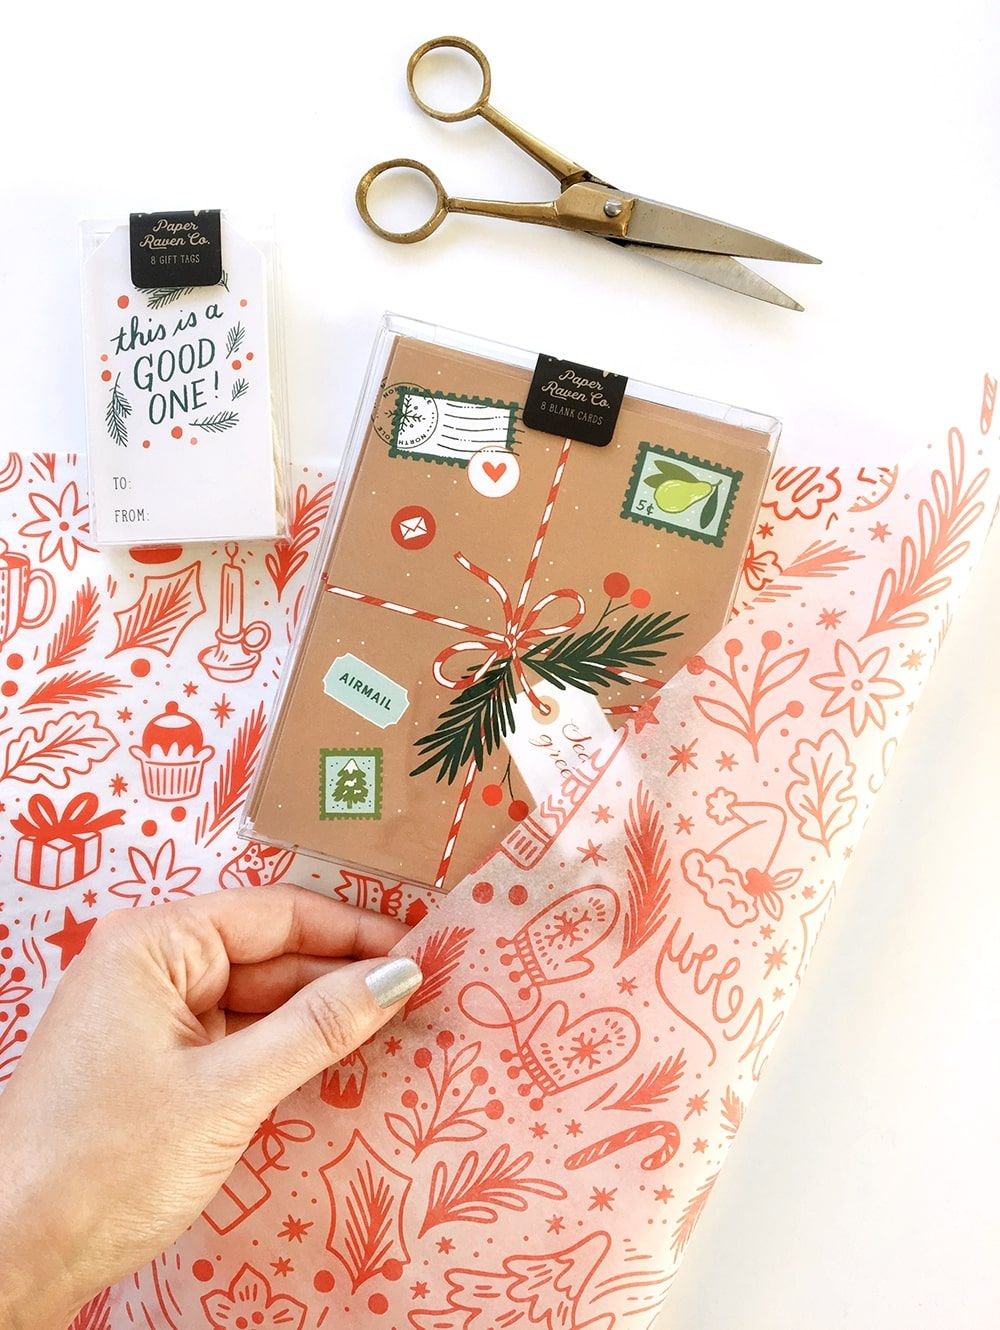 Paper Raven Co: Holiday Packaging with Green Credentials